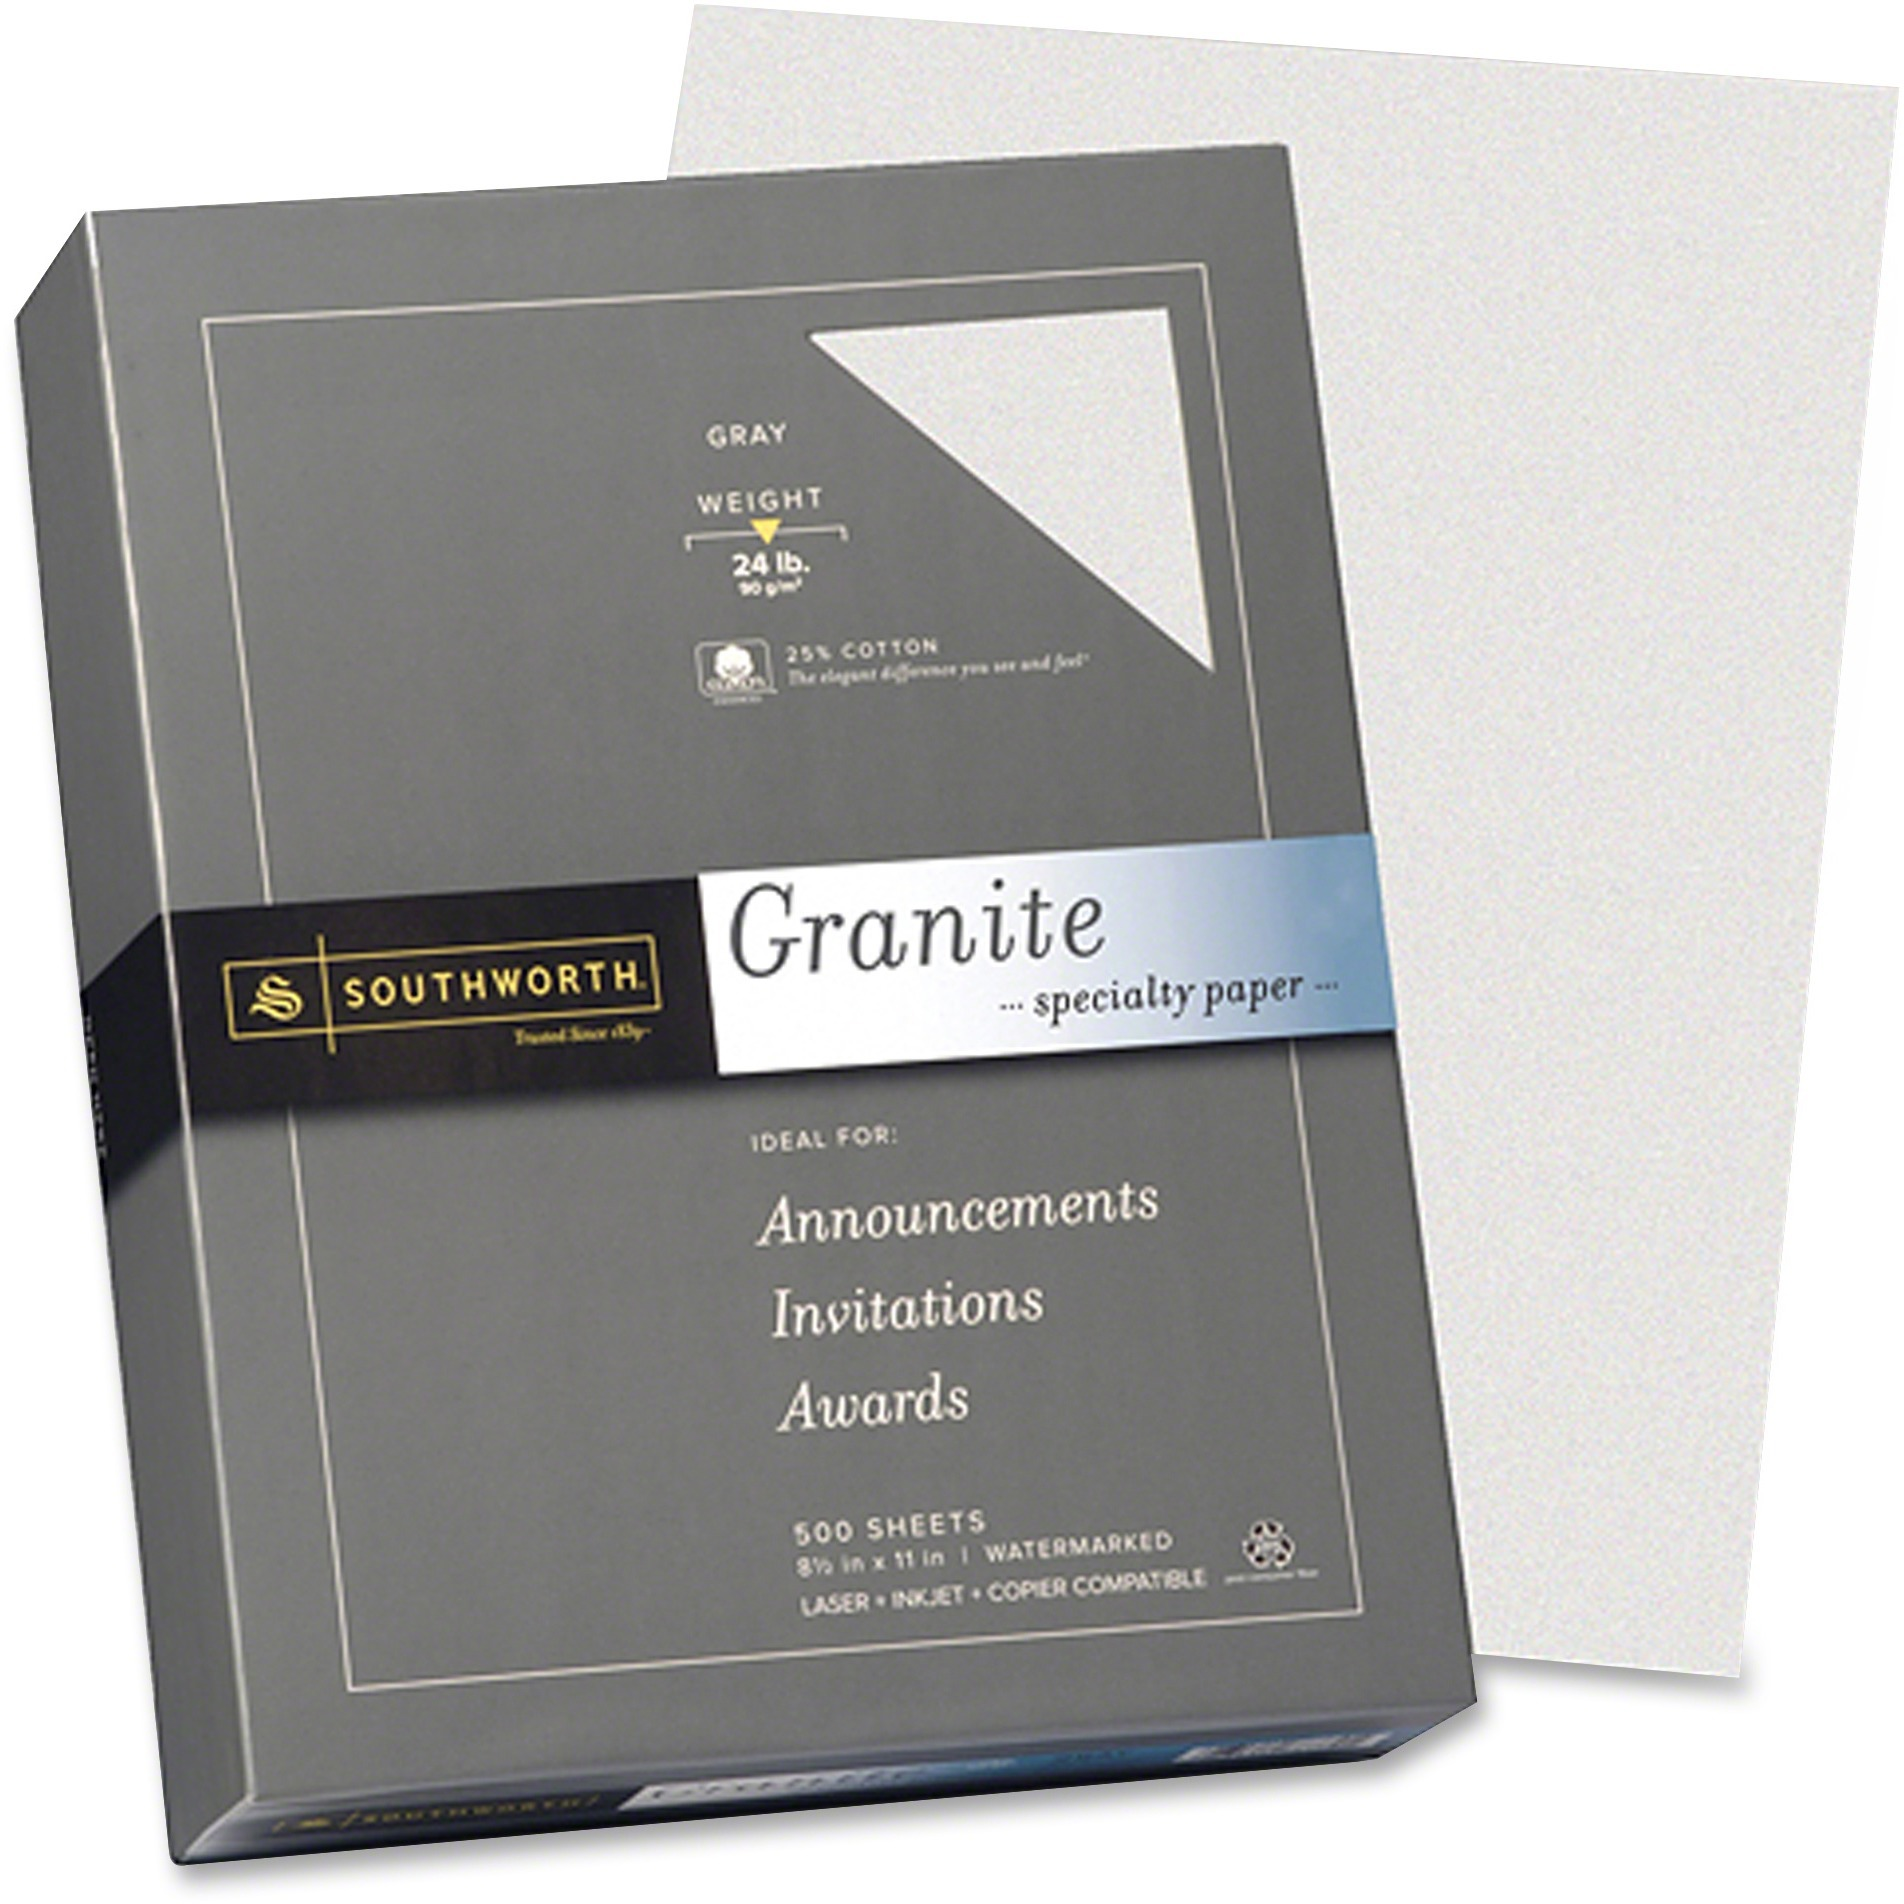 Southworth, SOU914C, Granite Specialty Paper, 500 / Box, Gray